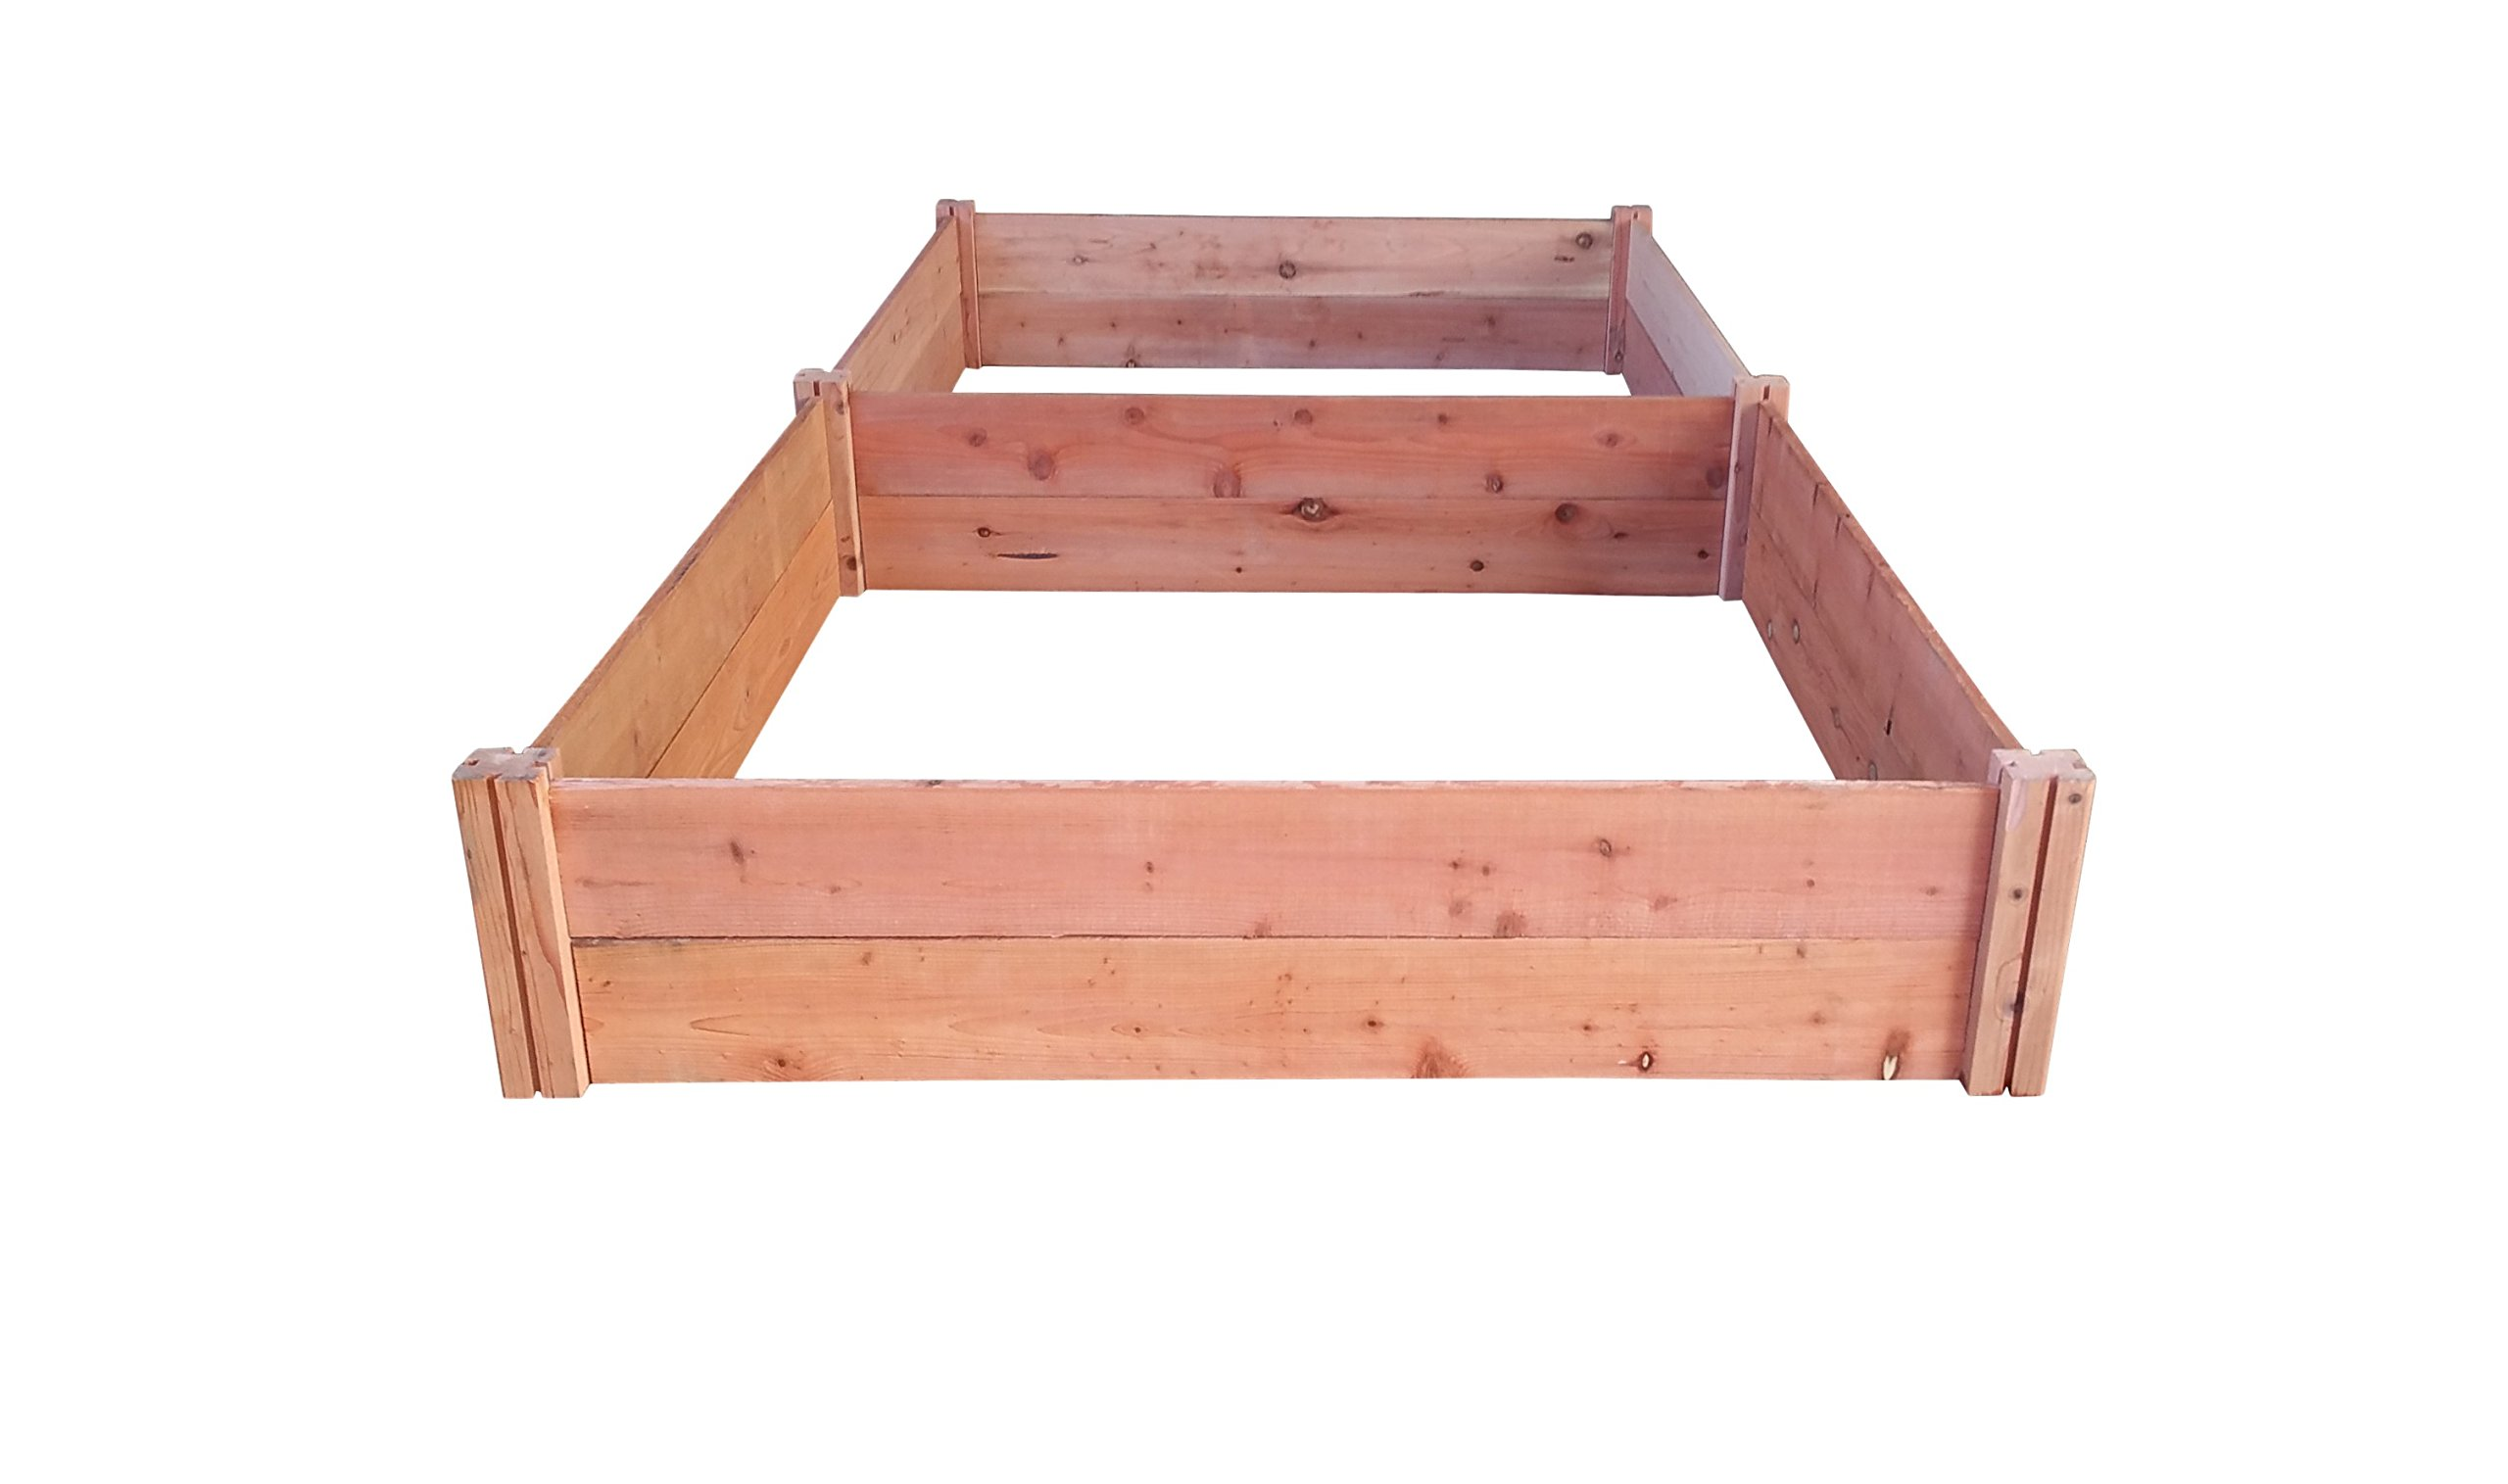 GroGardens 4' x 8' x 11'' Redwood Raised Garden Bed